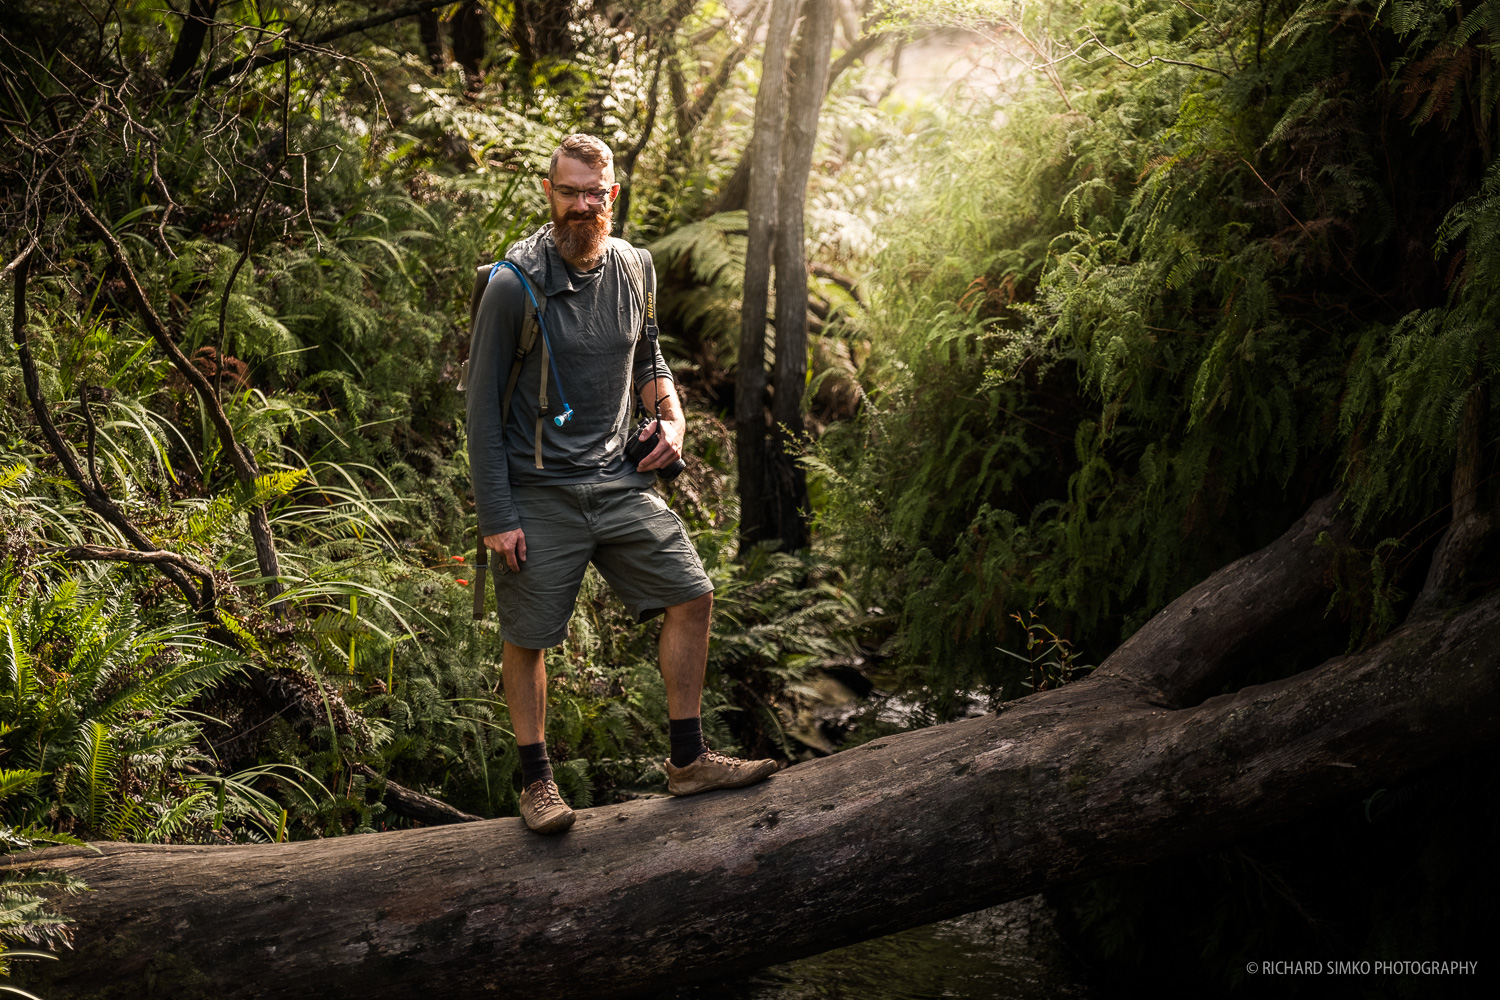 Etienne standing on a log, Wentworth Falls hike